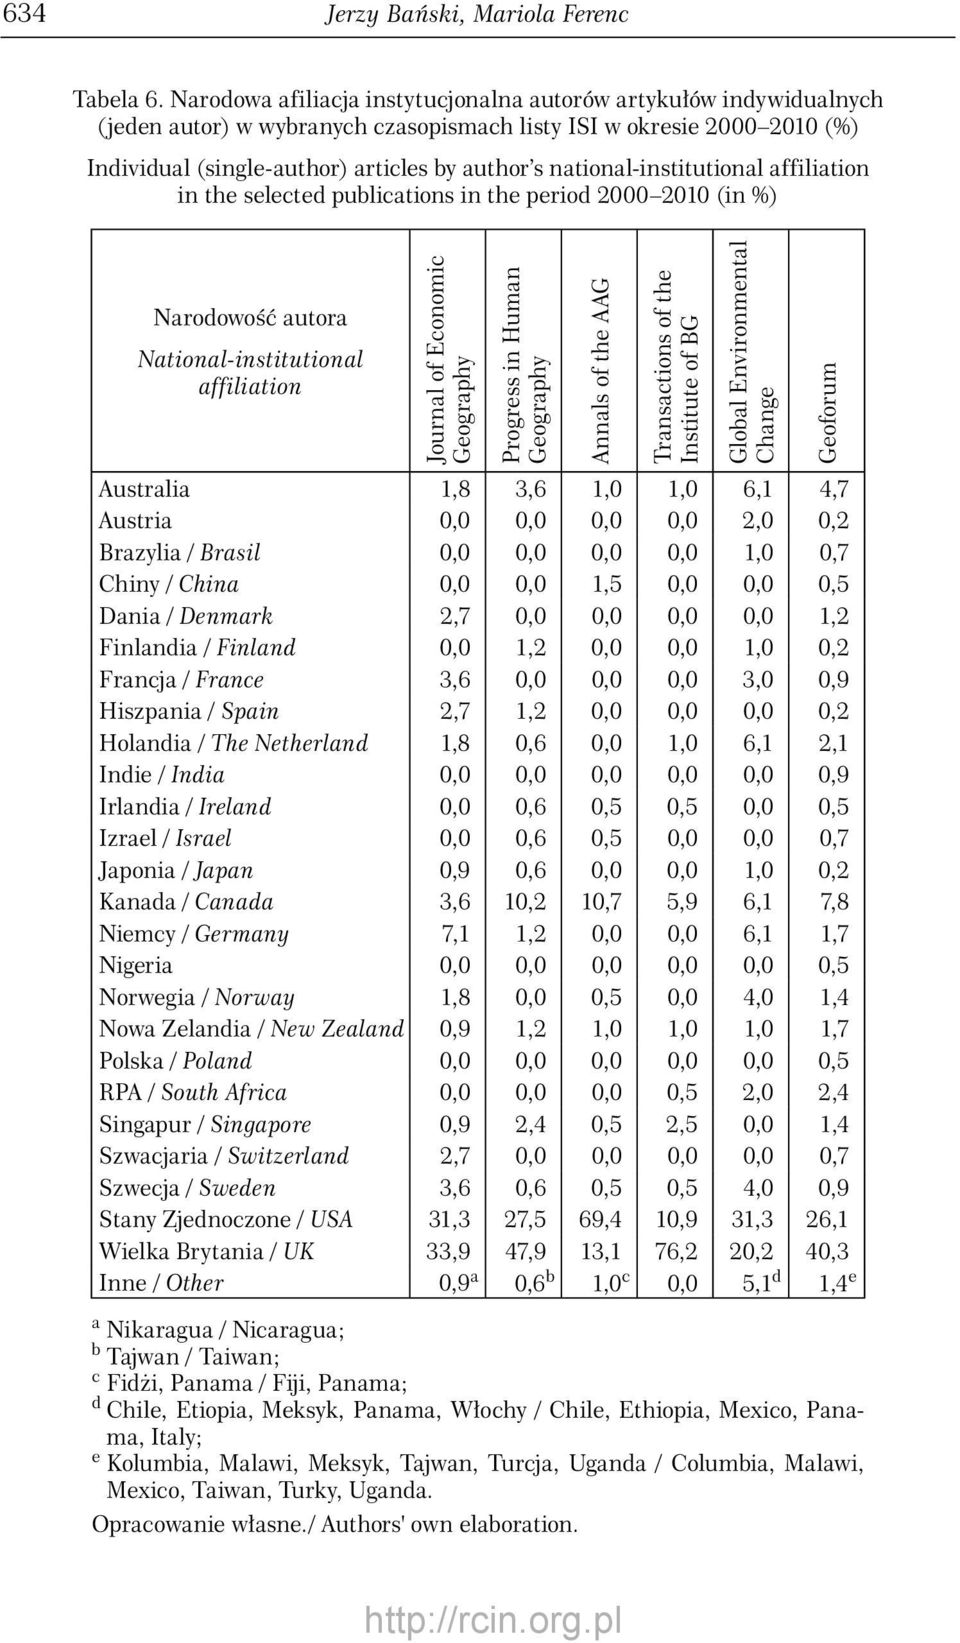 national-institutional affiliation in the selected publications in the period (in %) Narodowość autora National-institutional affiliation Journal of Economic Geography Progress in Human Geography